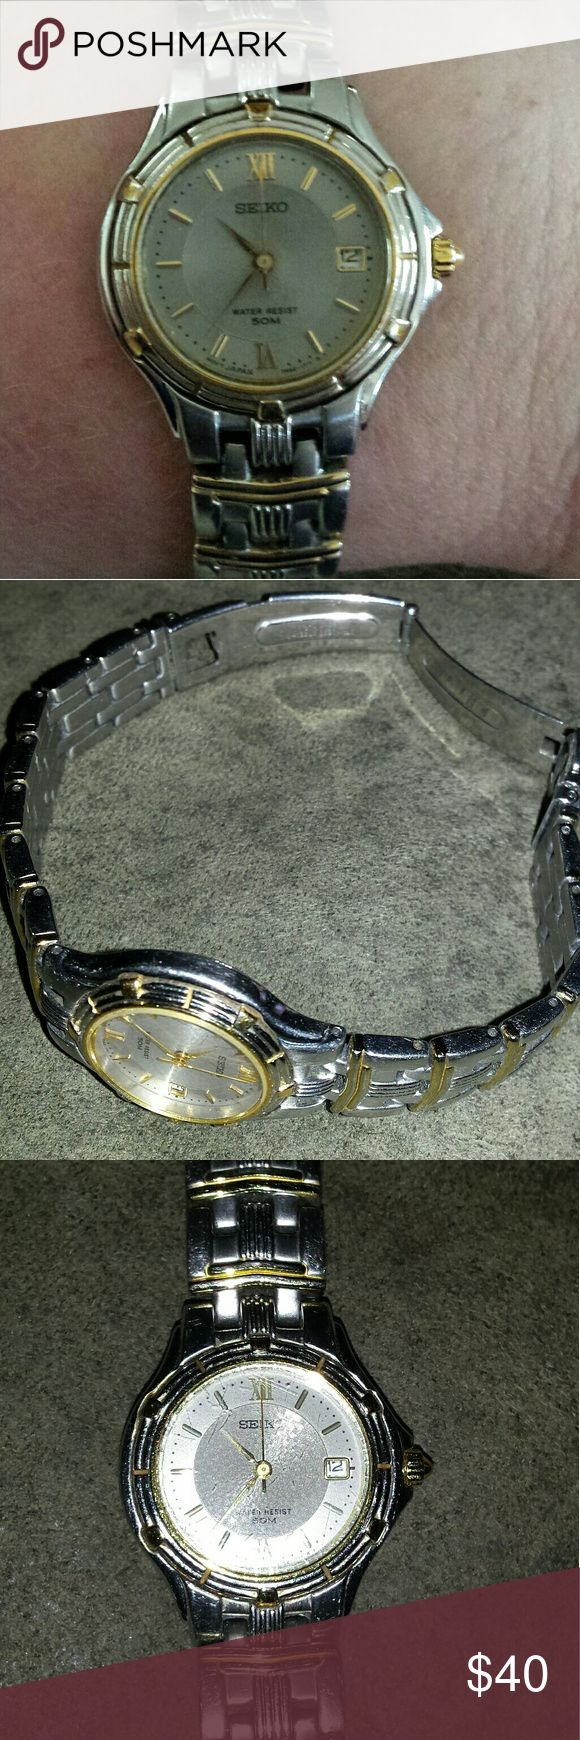 Small ladies Seiko water resistant watch This petite two tone watch features a second hand and date window. It needs a new battery and has very minor scratches. It is an excellent everyday watch. Seiko Accessories Watches